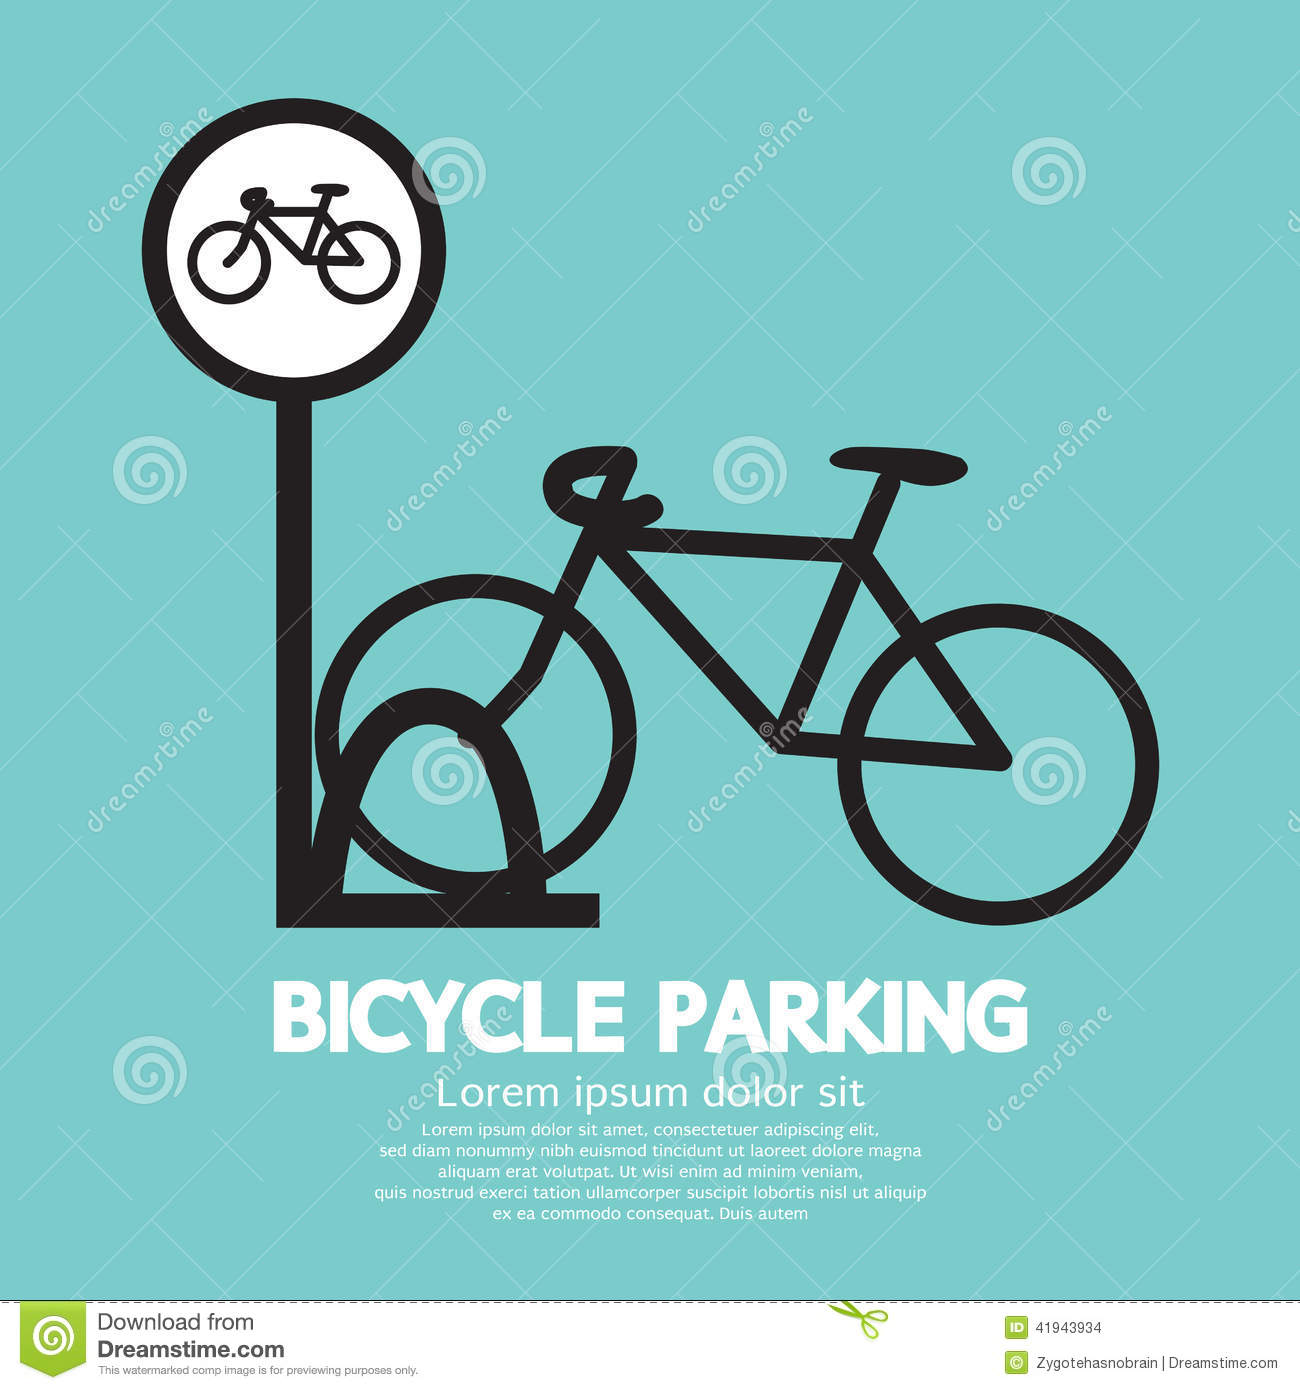 Bicycle parking sign stock vector image 41943934 - Parking de bicicletas ...